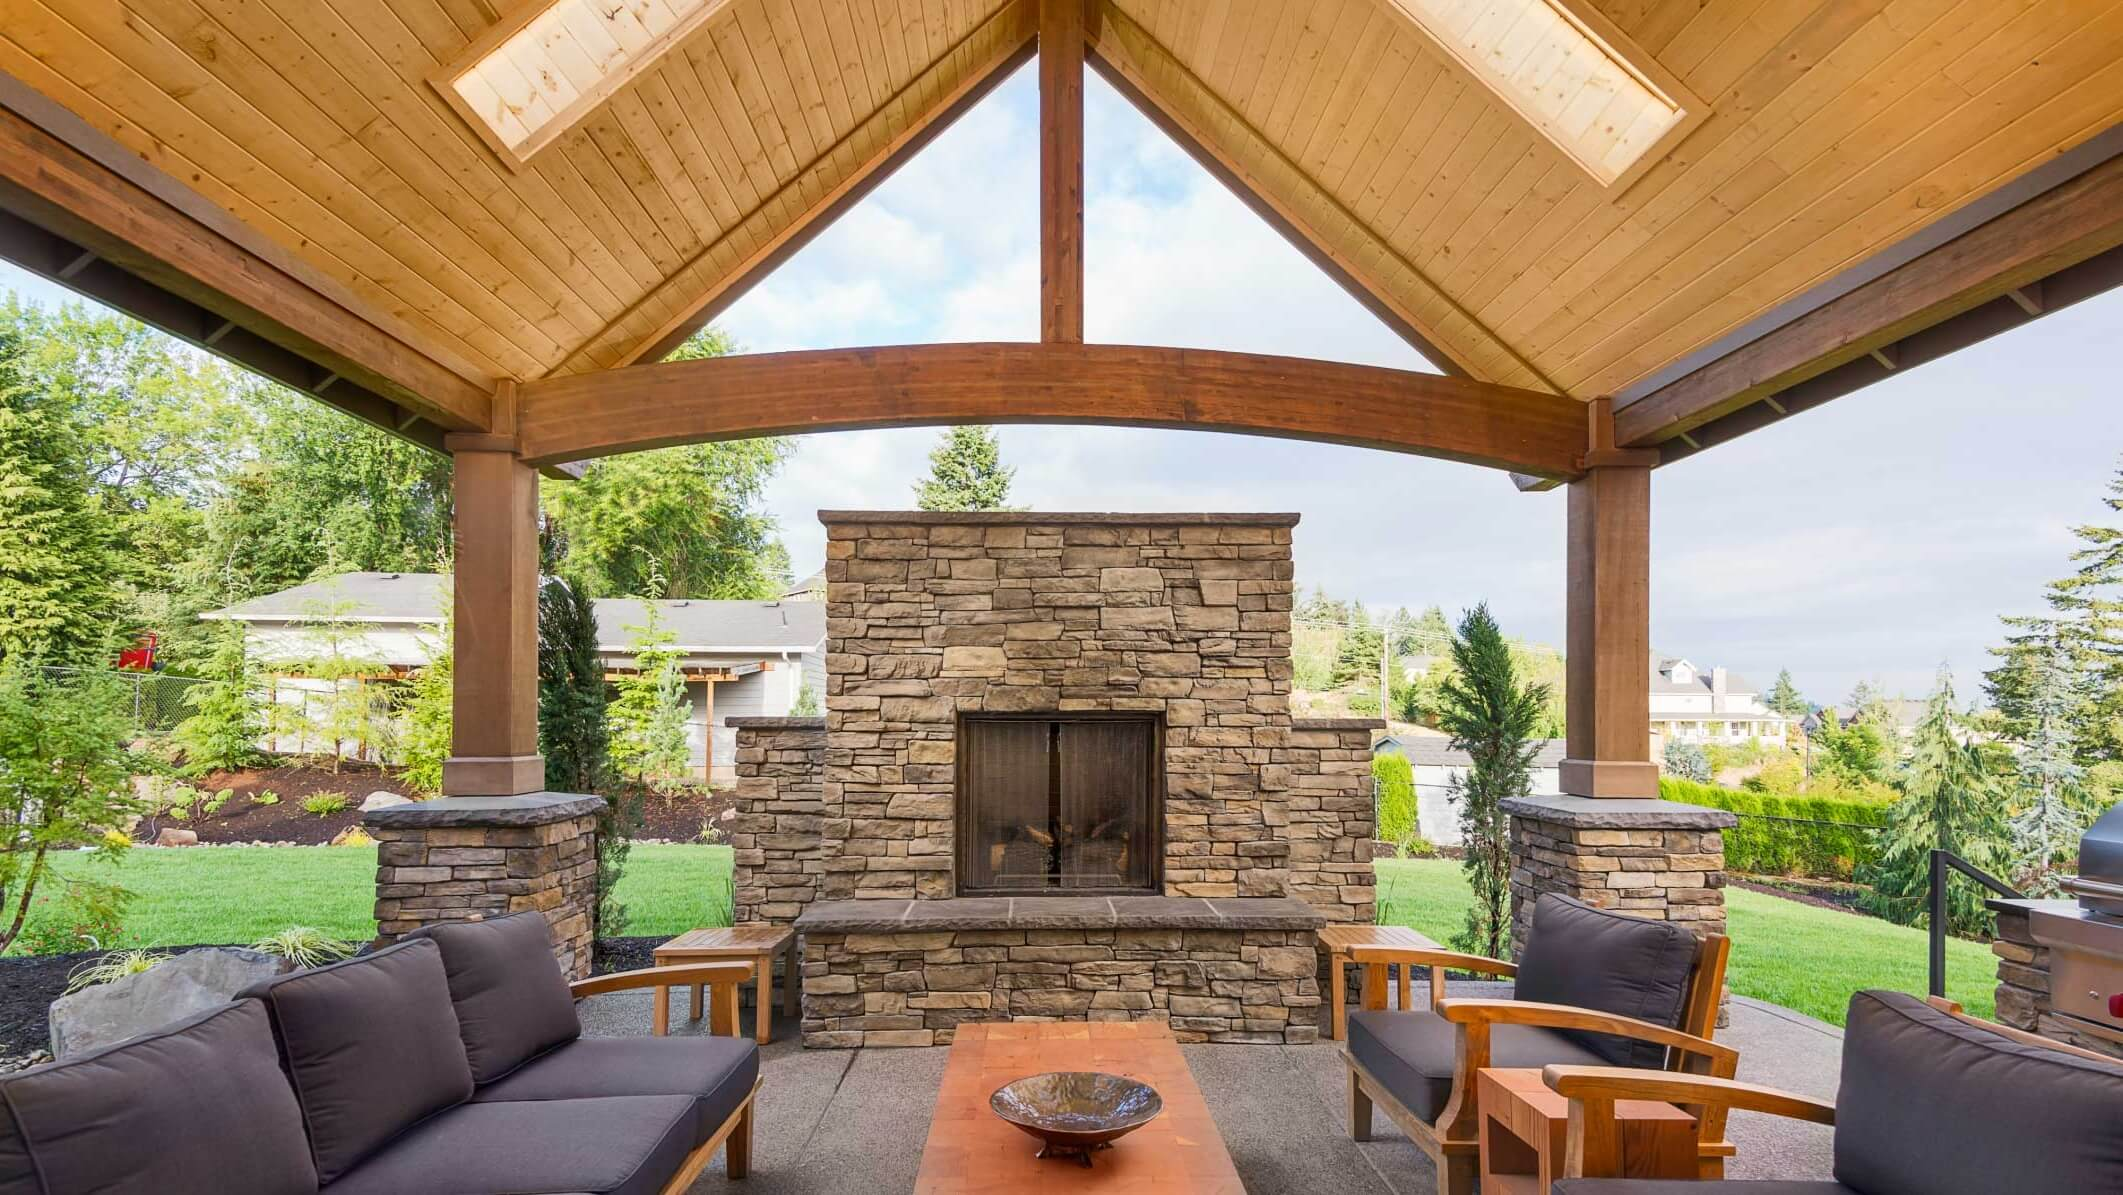 Make Your Patio Perfect with the Right Roof  Interior Design Design News and Architecture Trends